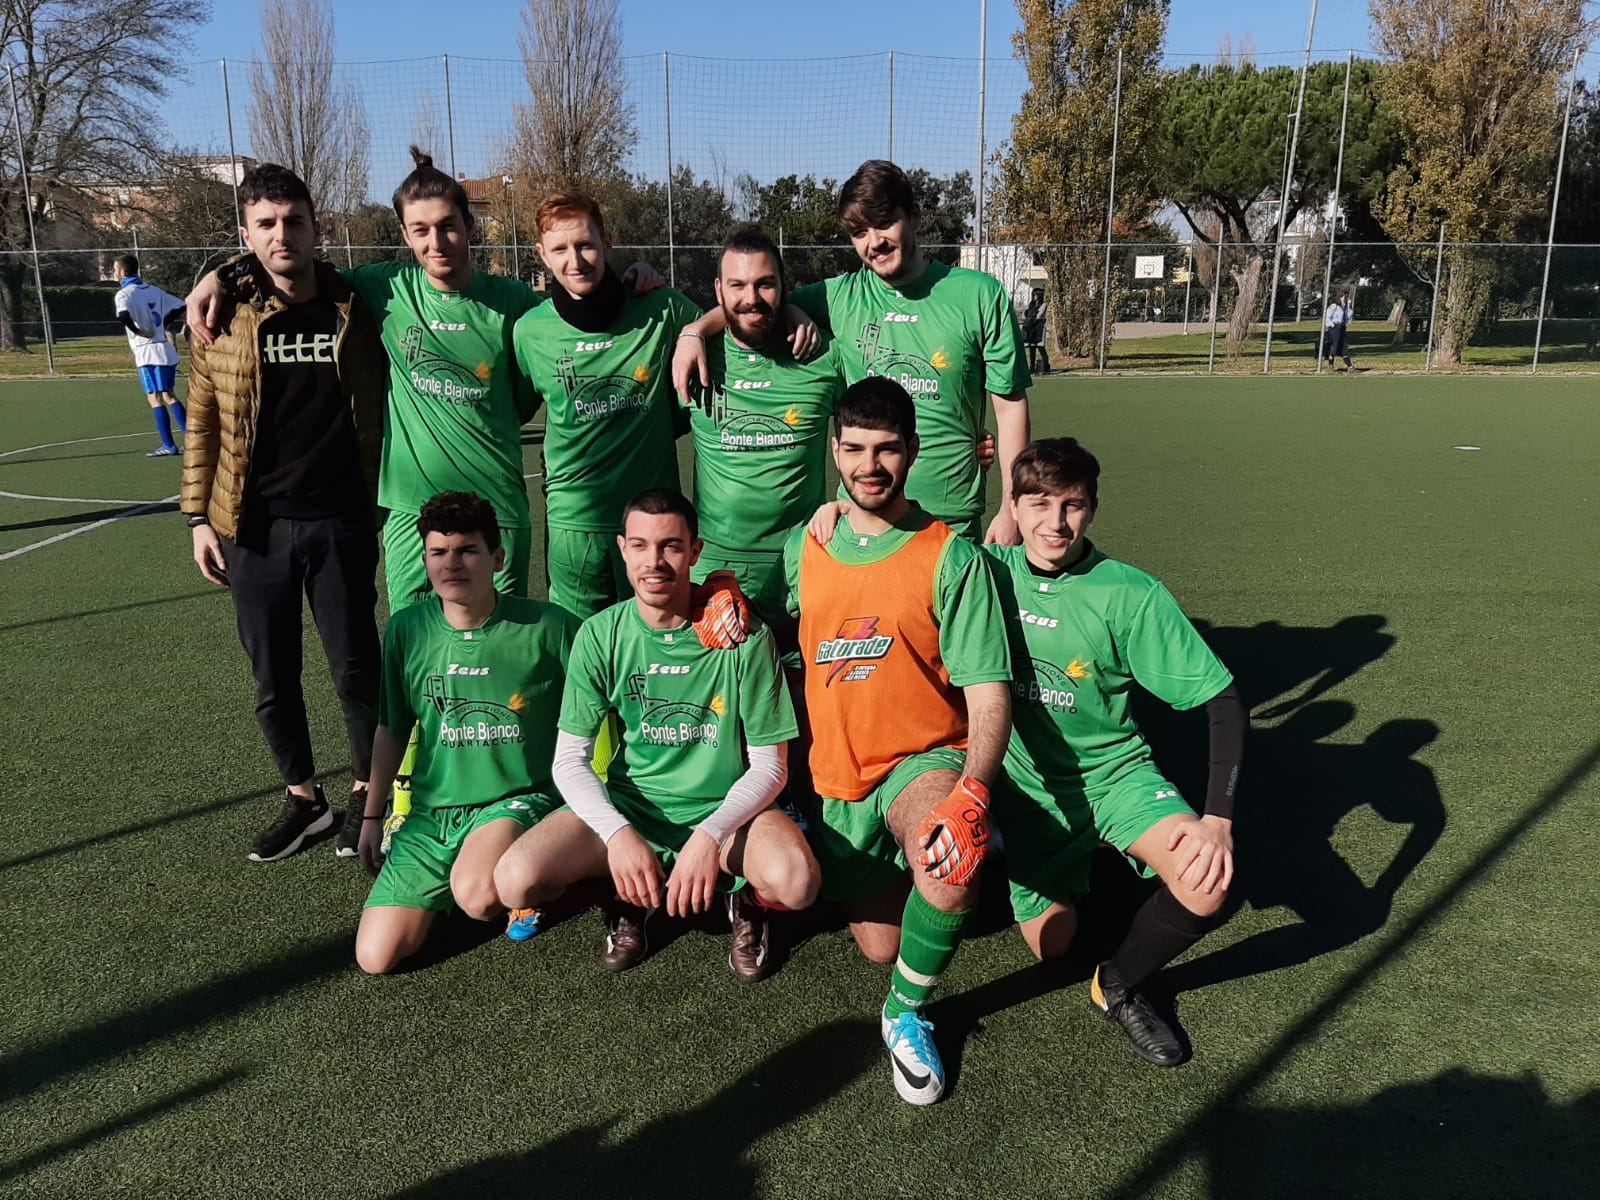 CALCIO A 5 OPEN: ALL'INSEGNA DEL FAIR PLAY E DELL'EQUILIBRIO